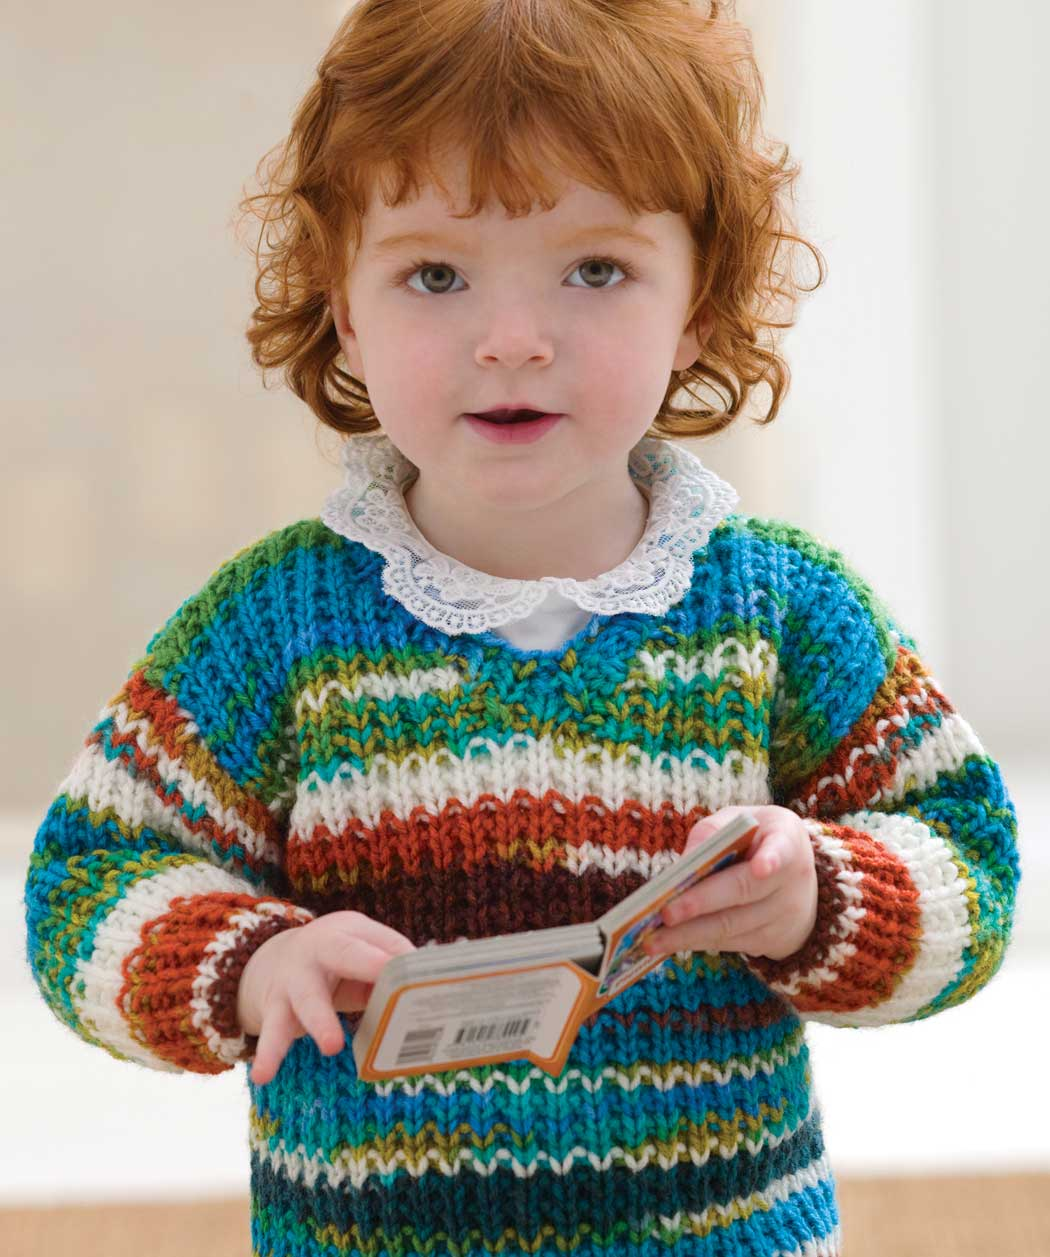 Knitting Patterns Sweater : Chunky knit sweater patterns a knitting